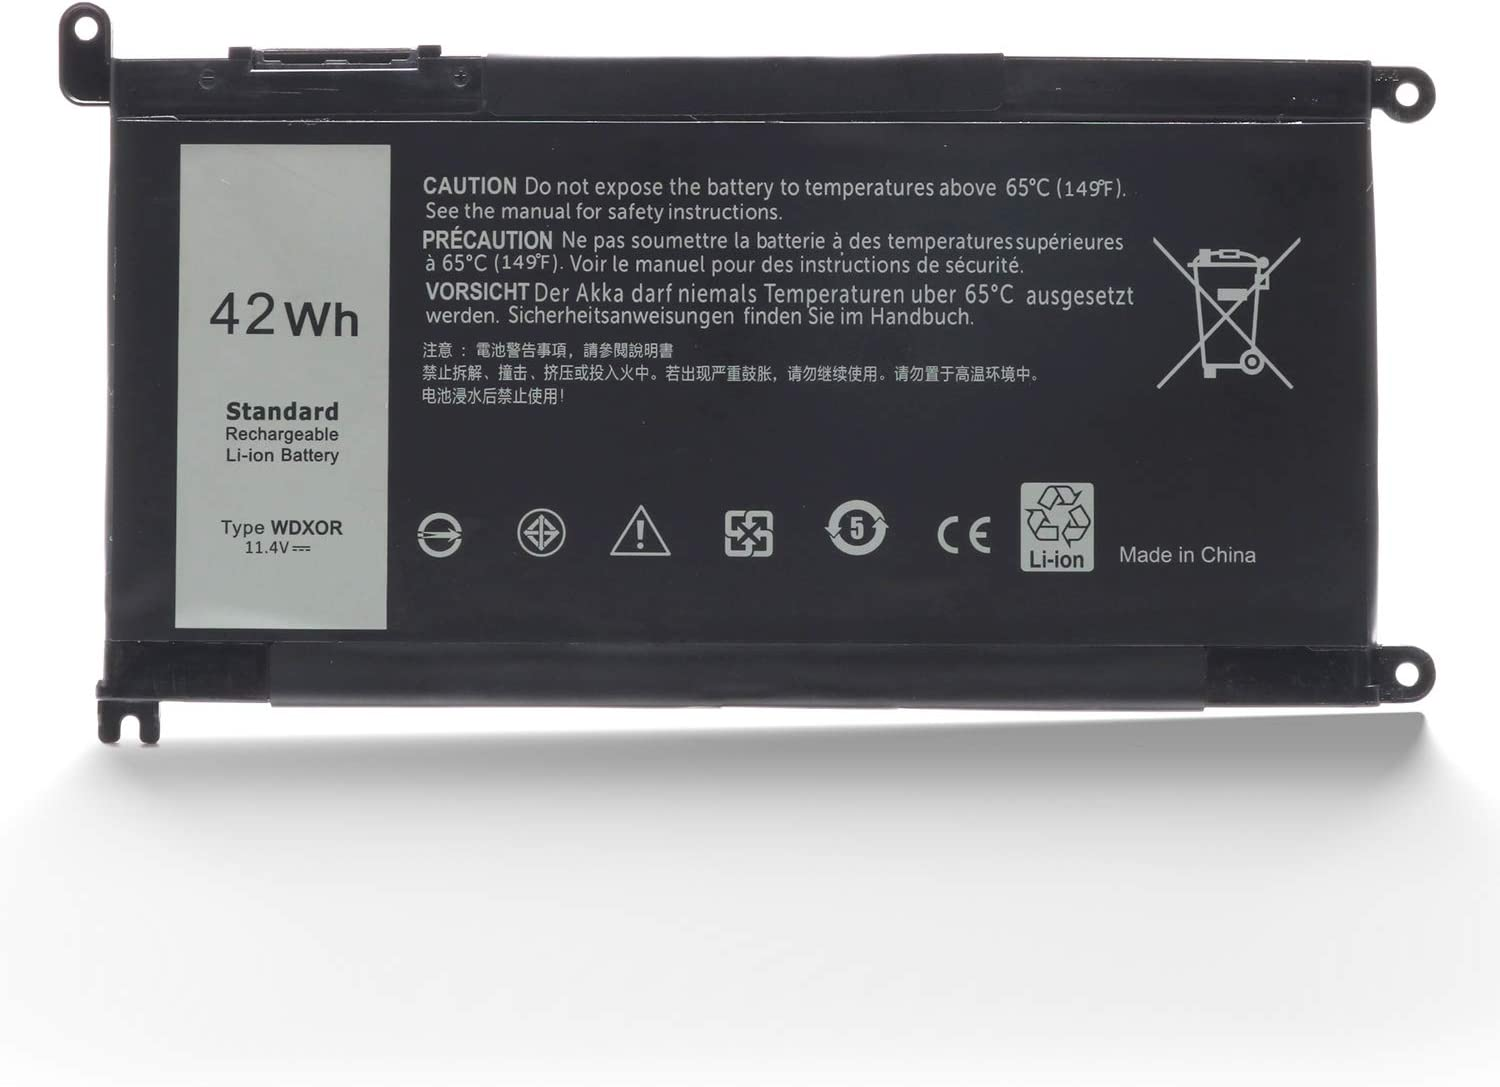 New WDXOR Replacement Battery for Dell Laptop Inspiron 15 3000 15 5000 13 7000 17 5000 Series 7378 5368 5567 5570 5578 7579 WDX0R P58F P58F001 P66F P69G P69G001 3CRH3 FC92N Y3F7Y 42Whr 4-Cell 11.4V